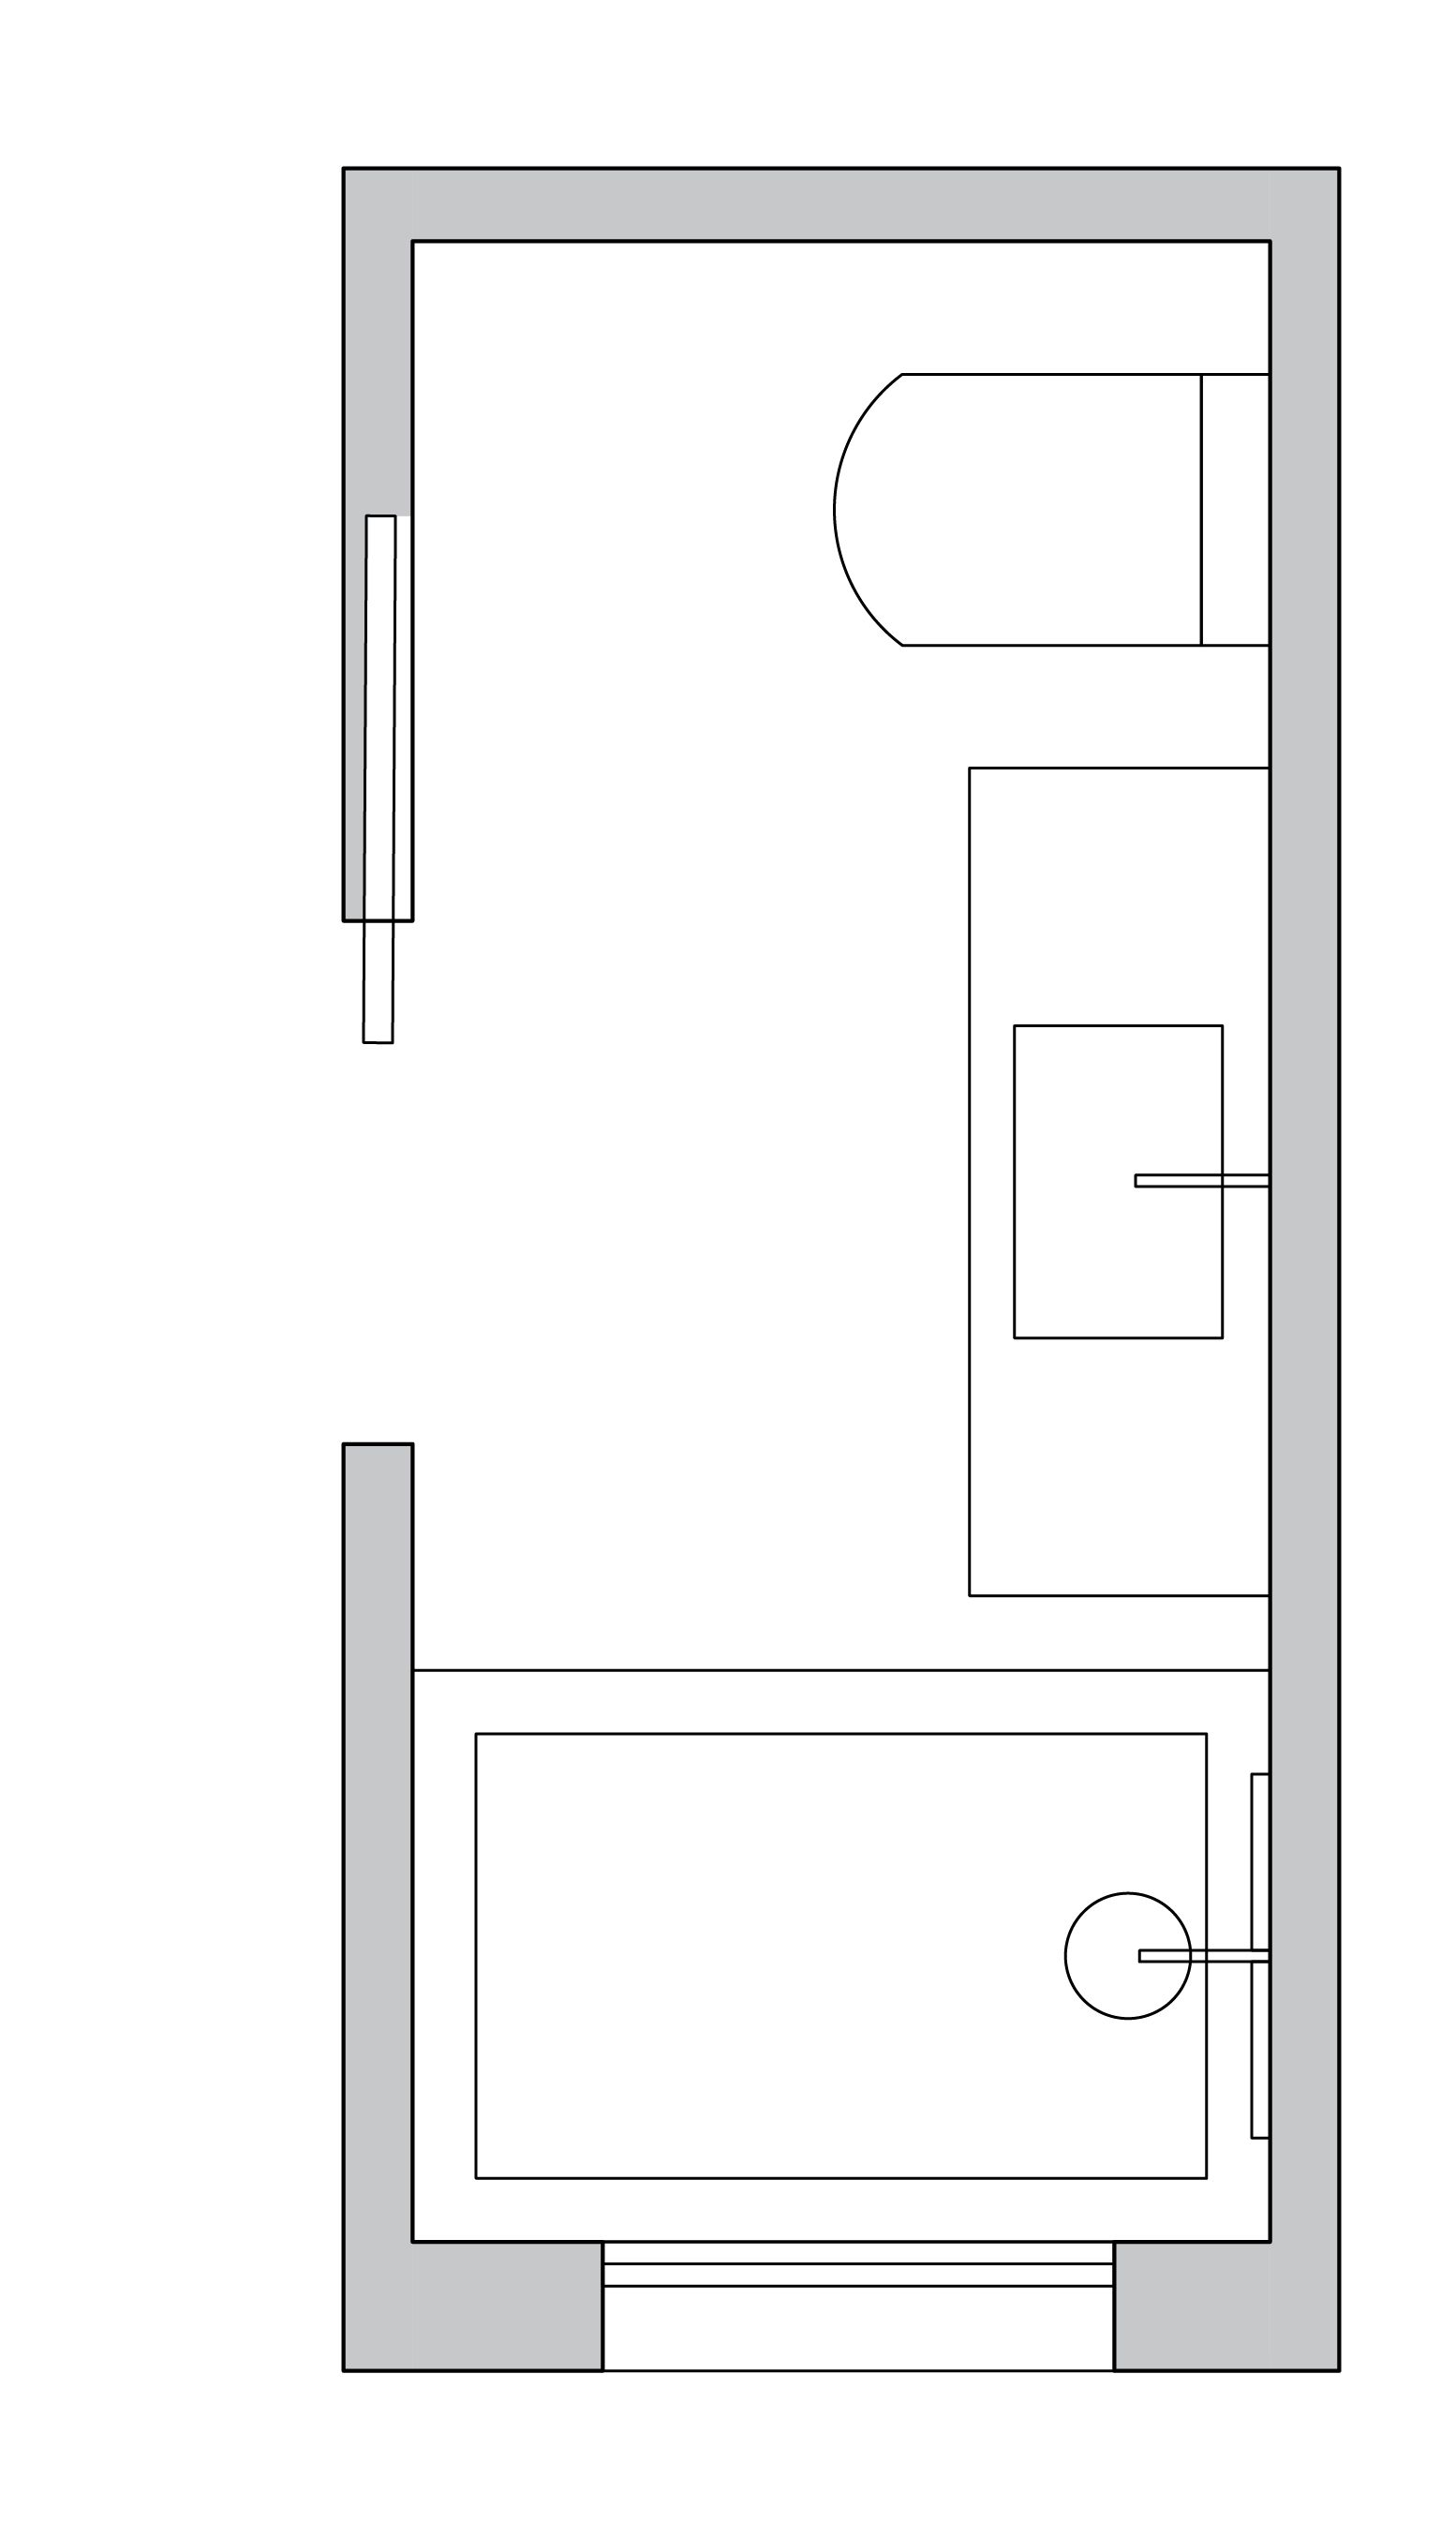 Photo of Small Bathroom Layout Ideas from an Architect for Maximum Space Use